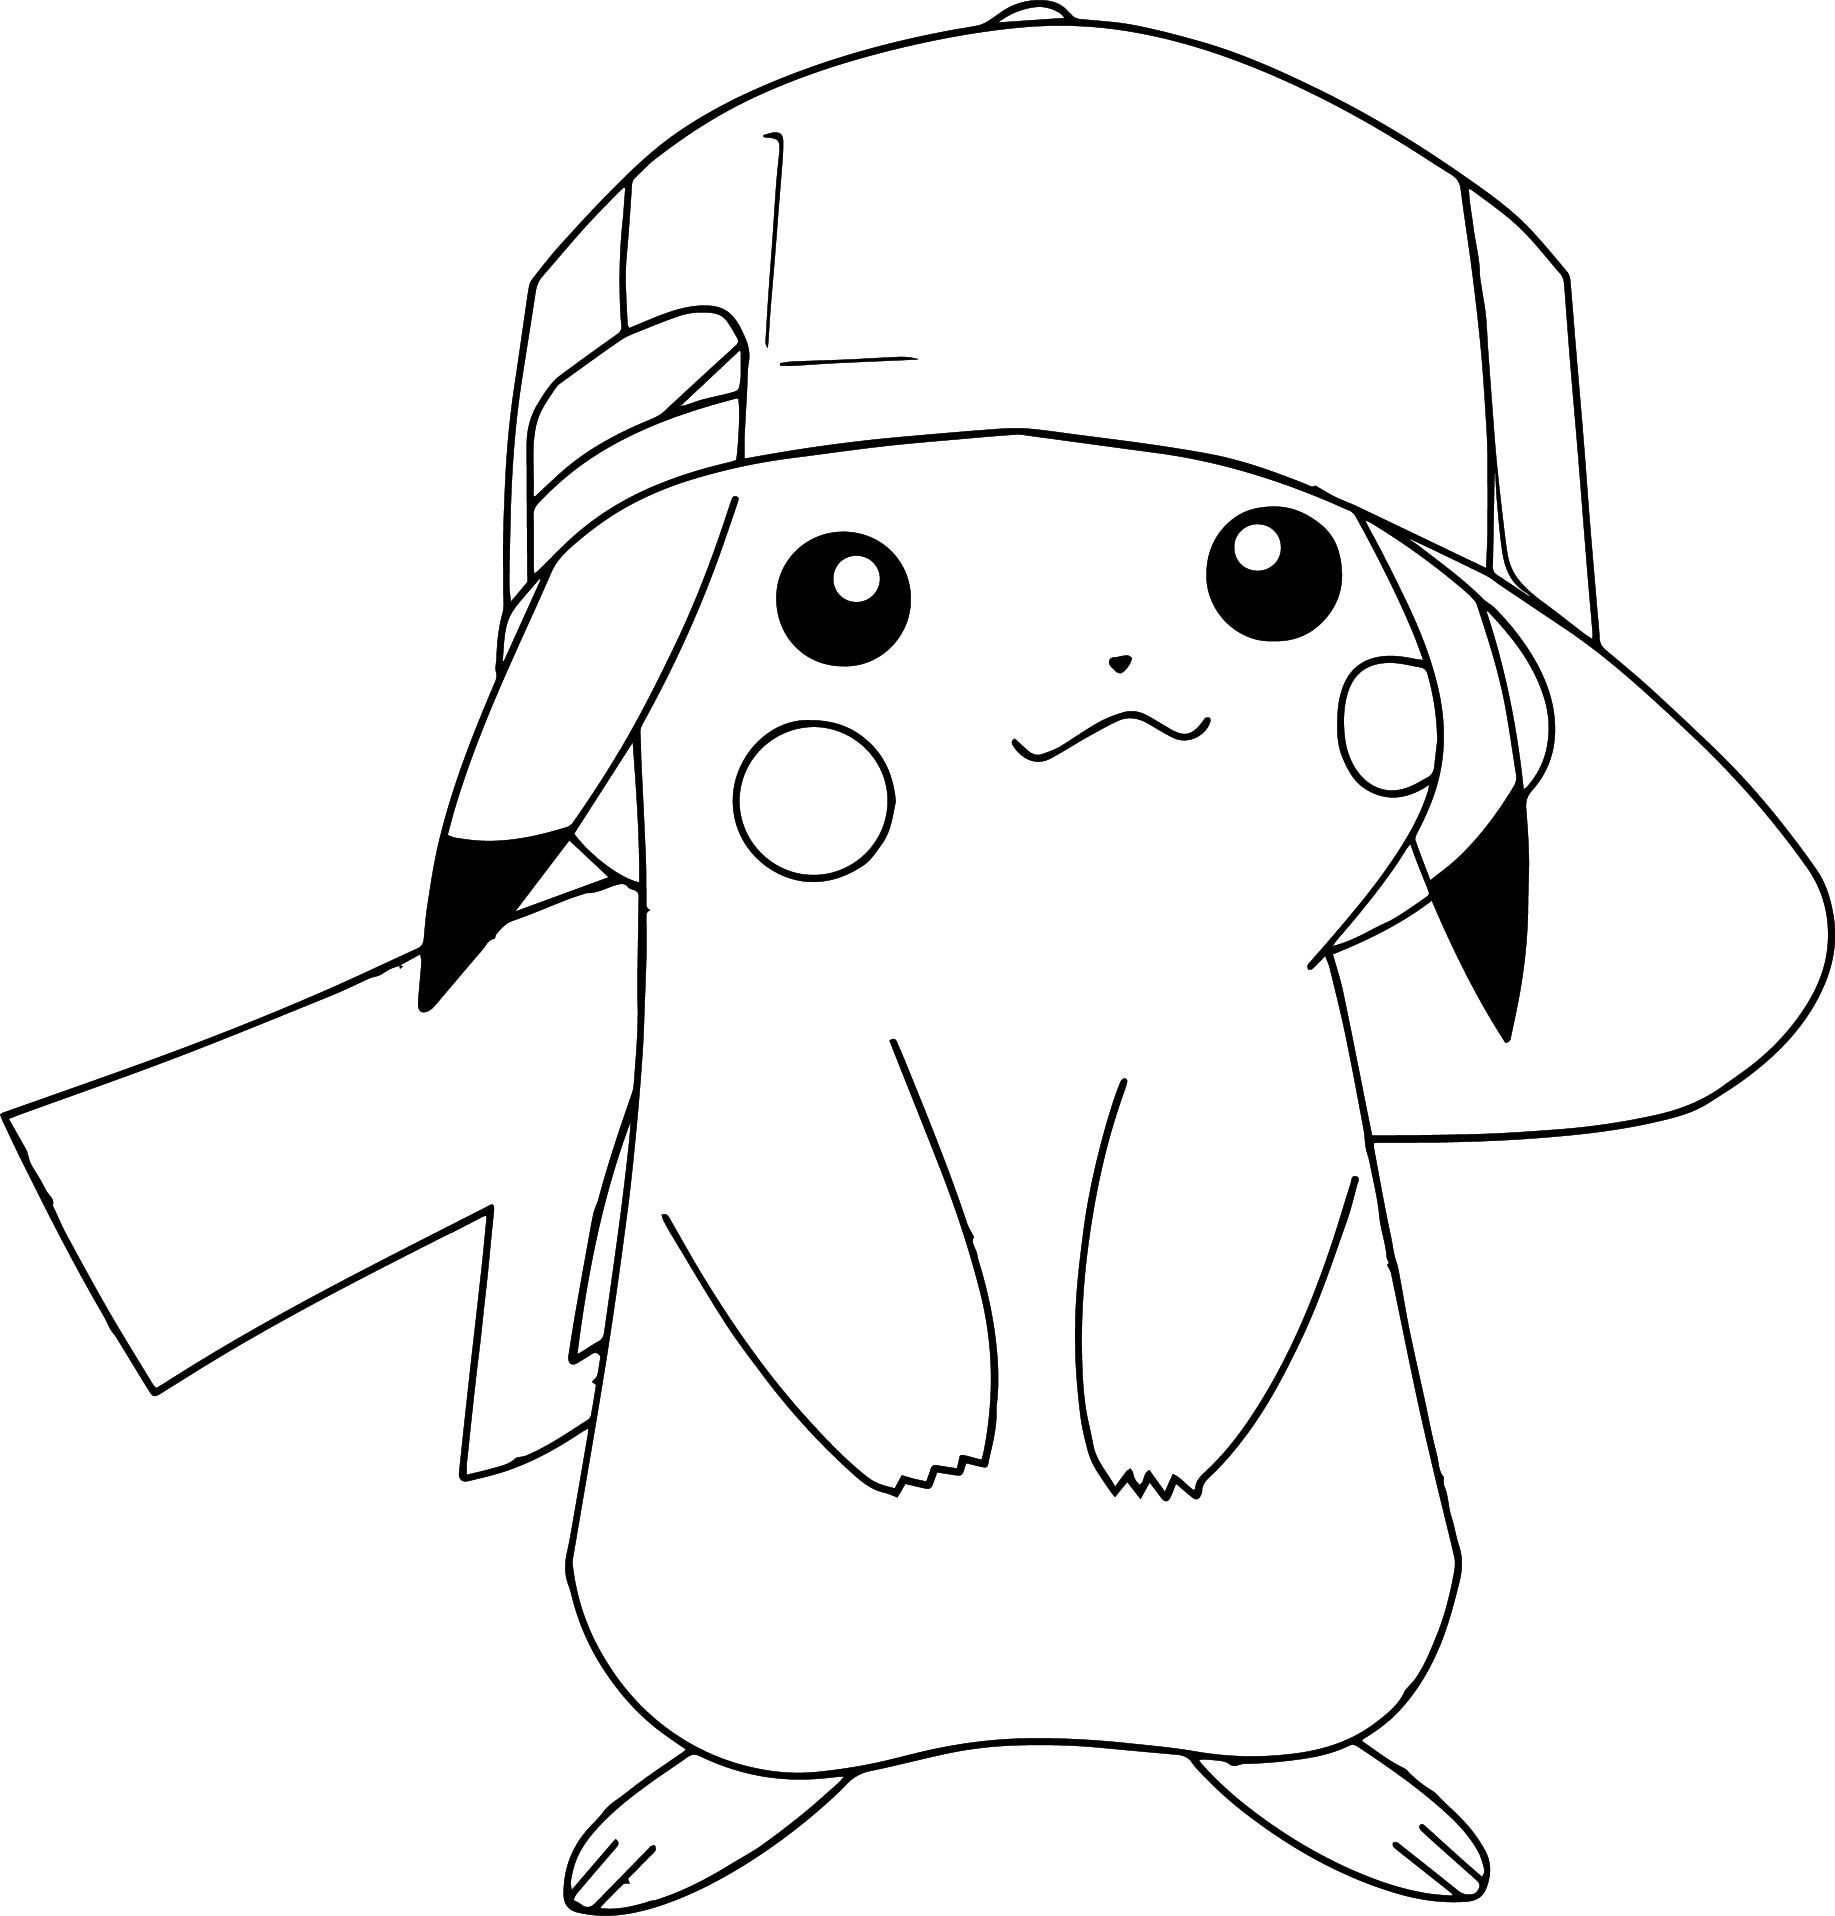 Lol Coloring Pages Free Printable Coloring Pages Of Pokemon Black And White Simple